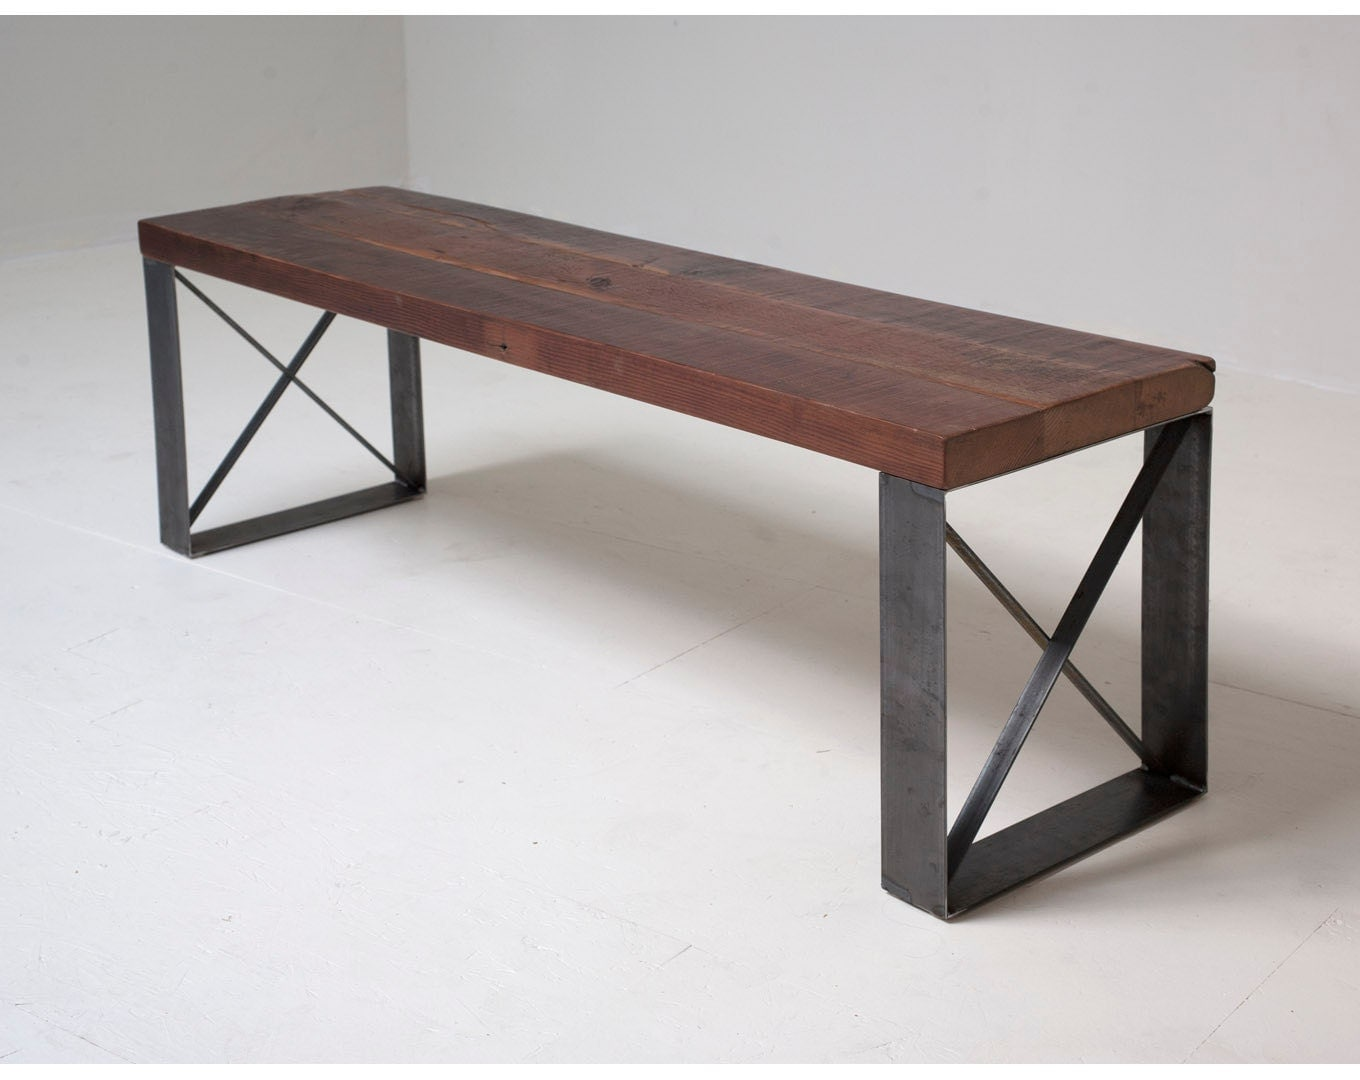 Sleek Modern Industrial Reclaimed Bench Coffee Table